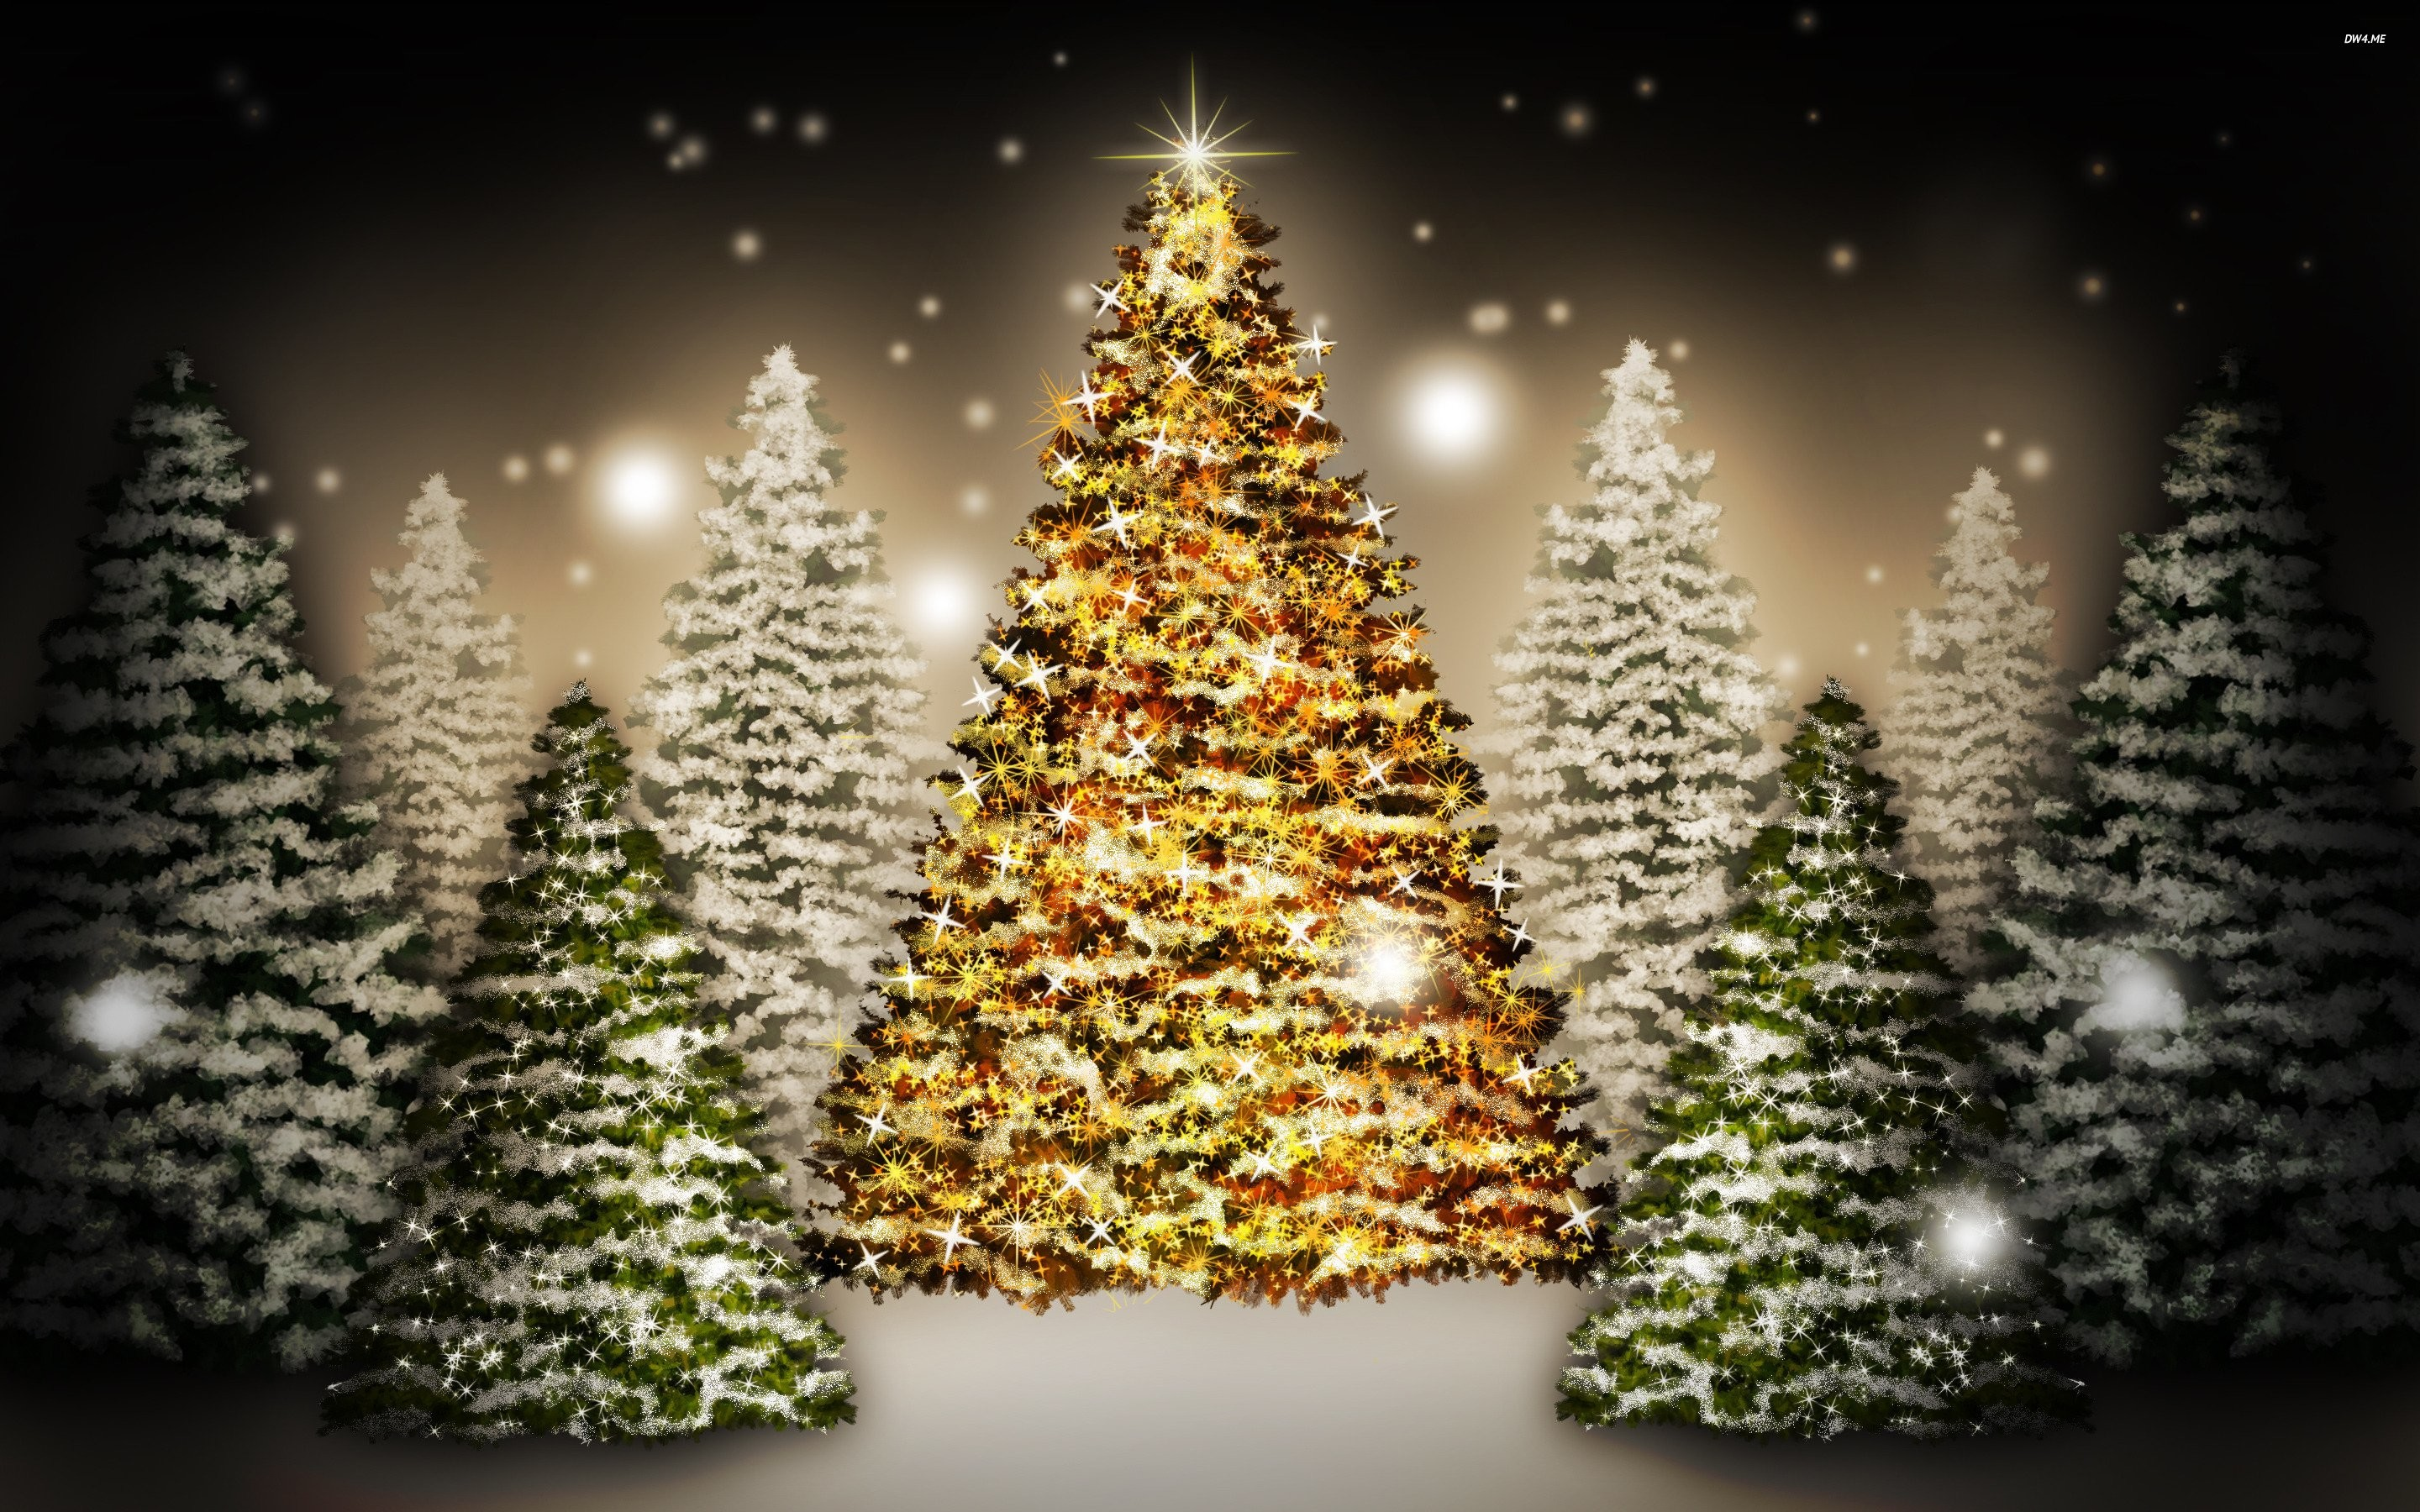 Christmas Tree Wallpaper (79+ images)